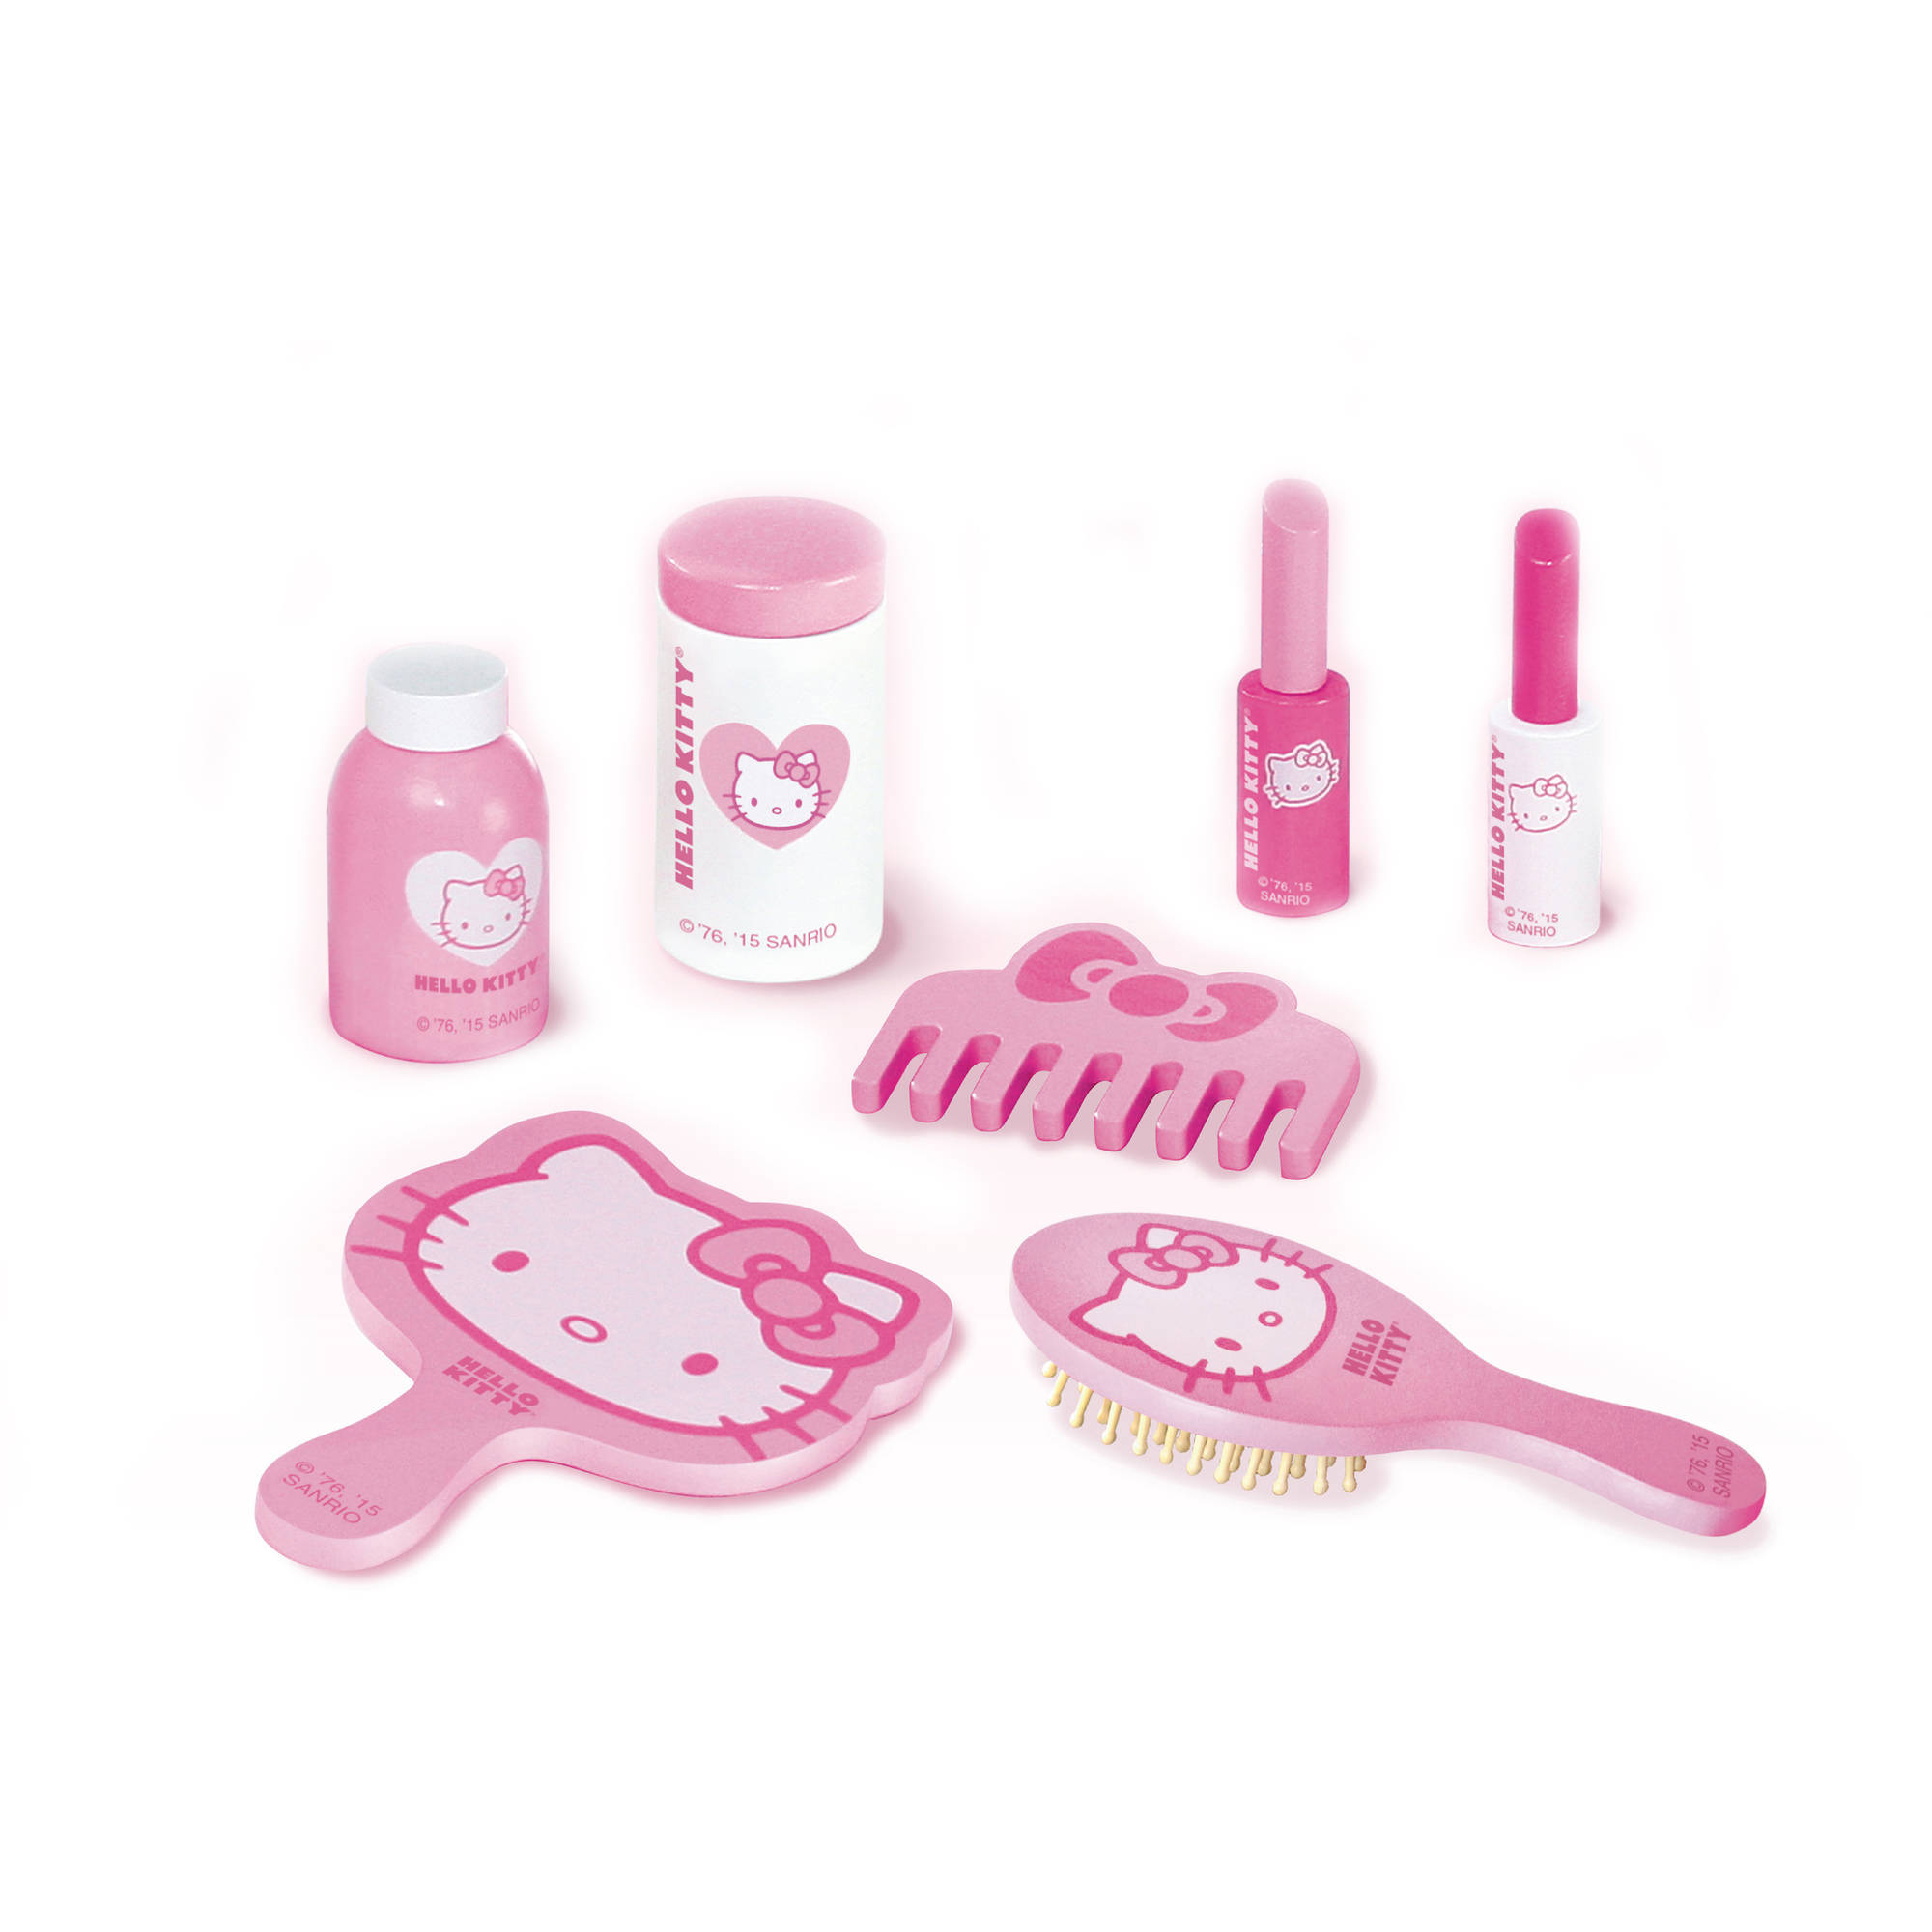 Jupiter Hello Kitty Vantiy Set by Jupiter Workshops HK Ltd.